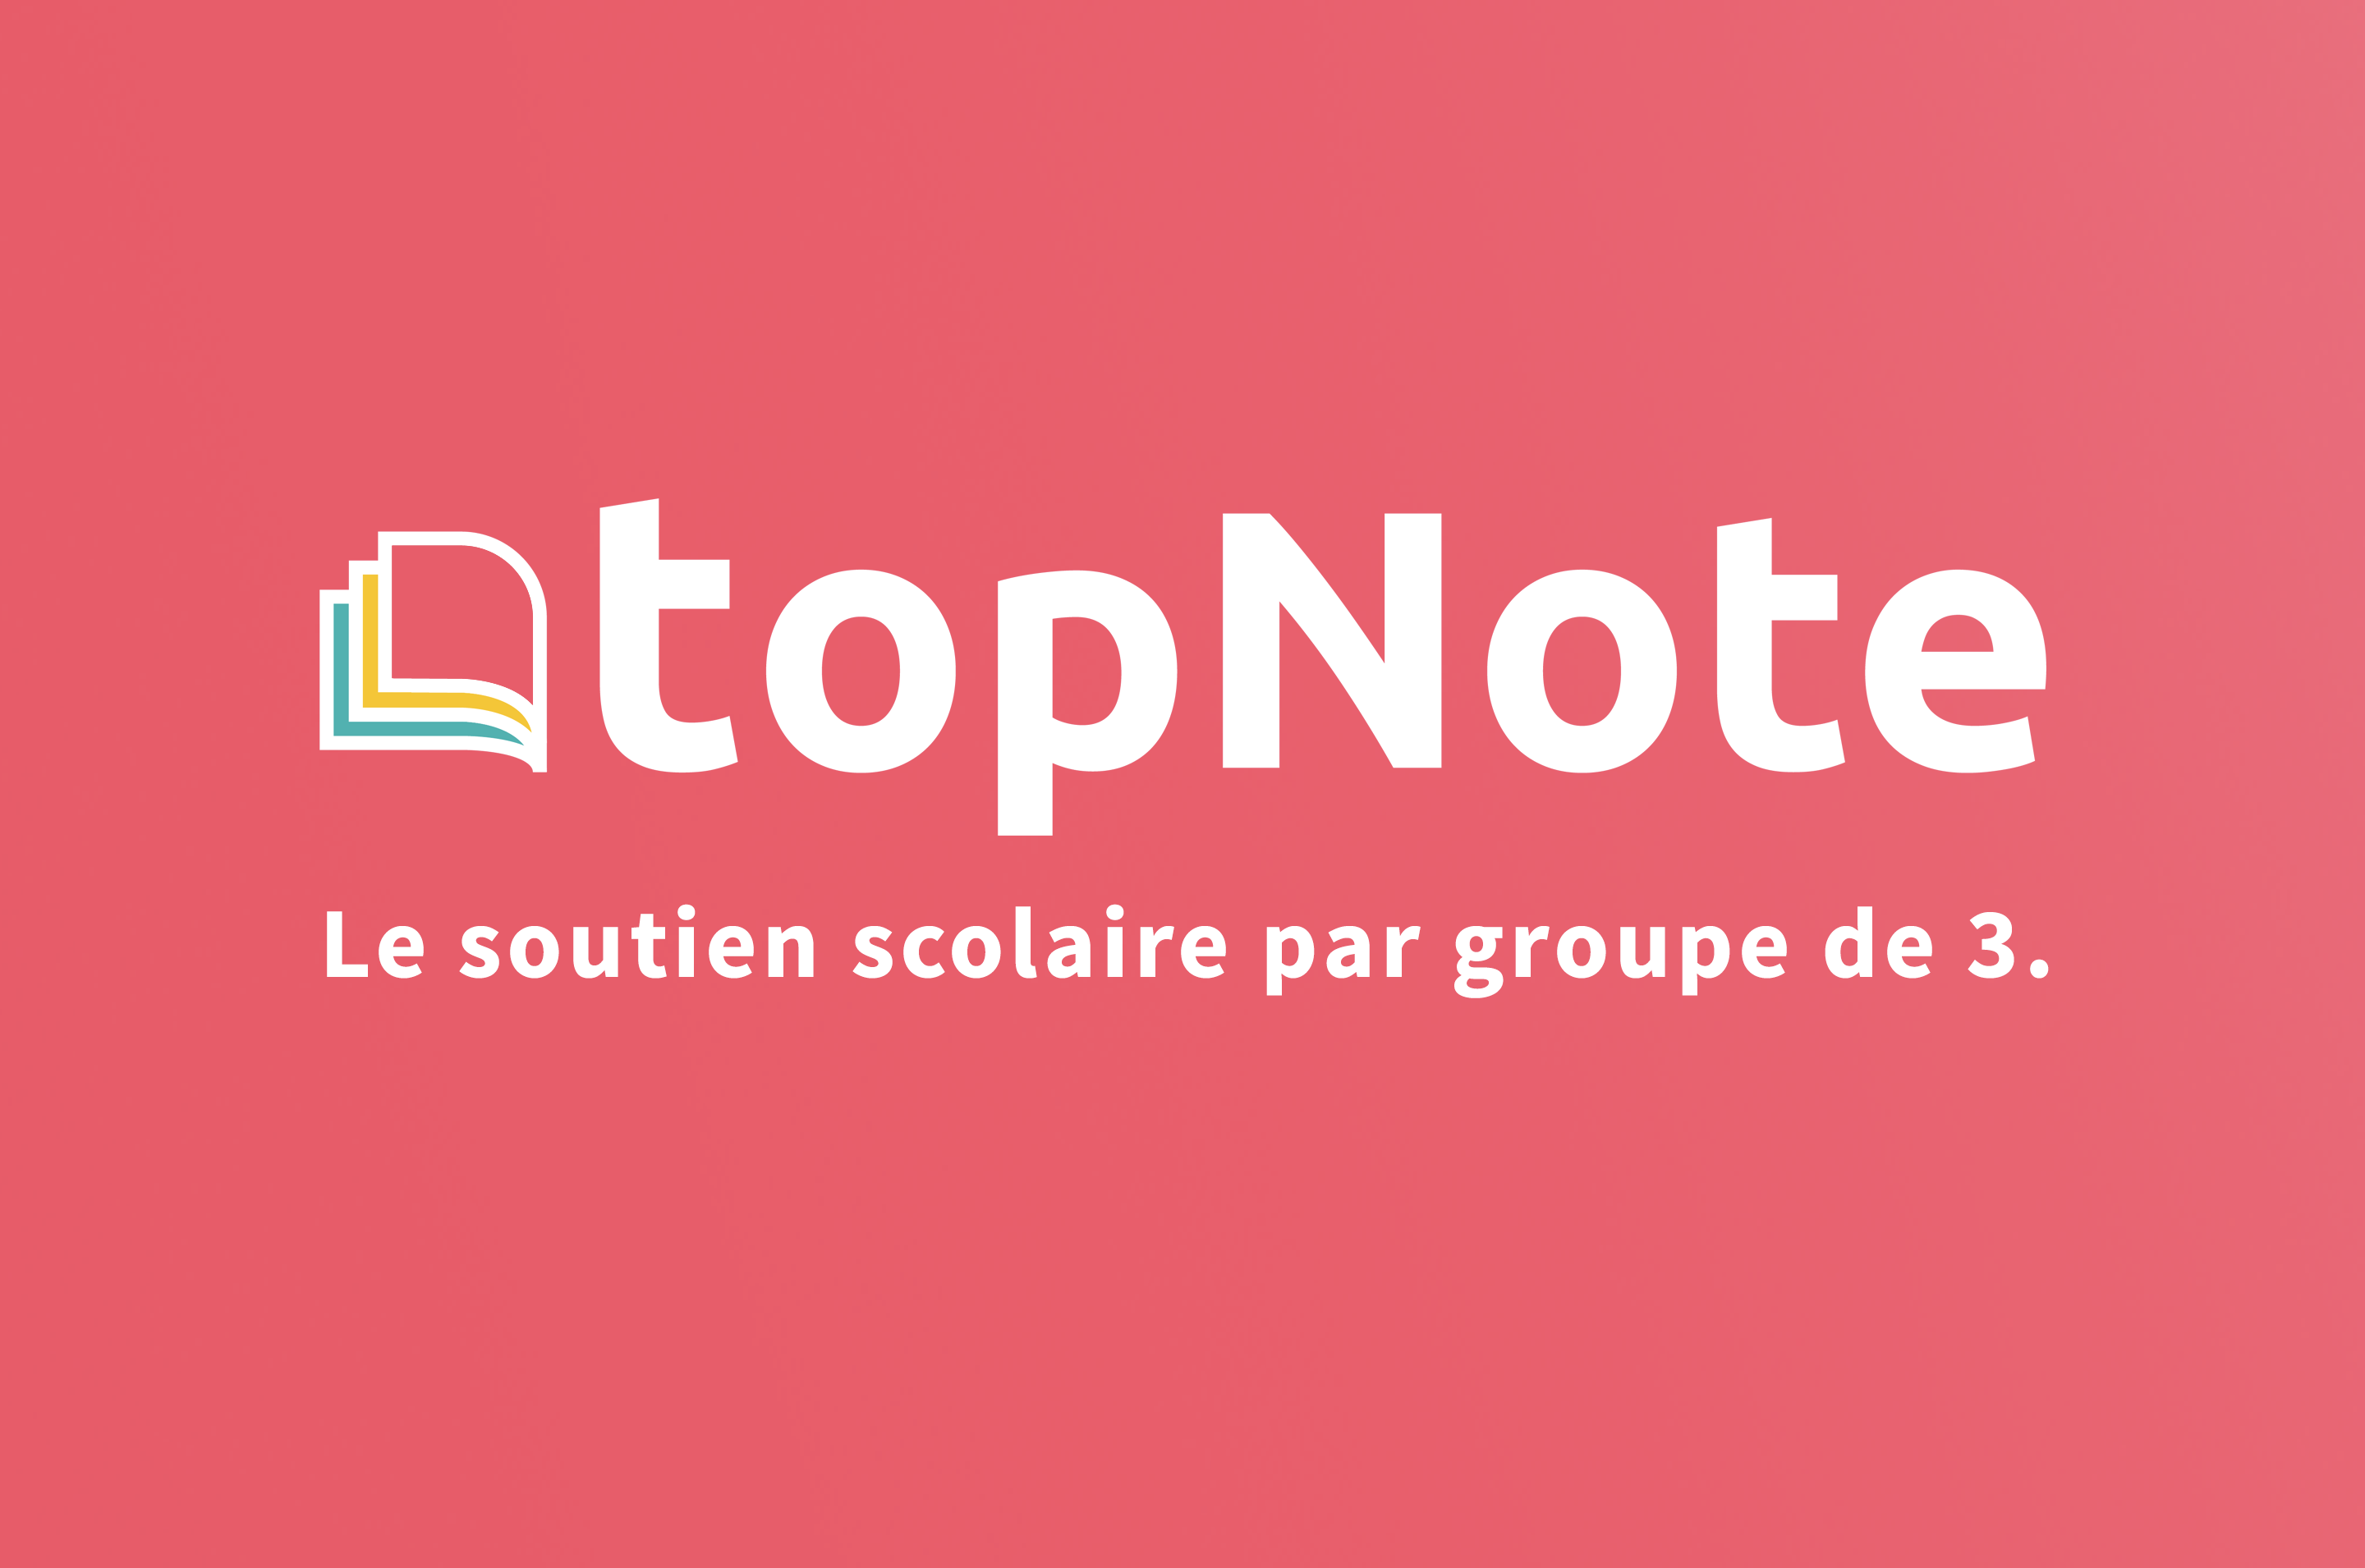 Topnote article blog